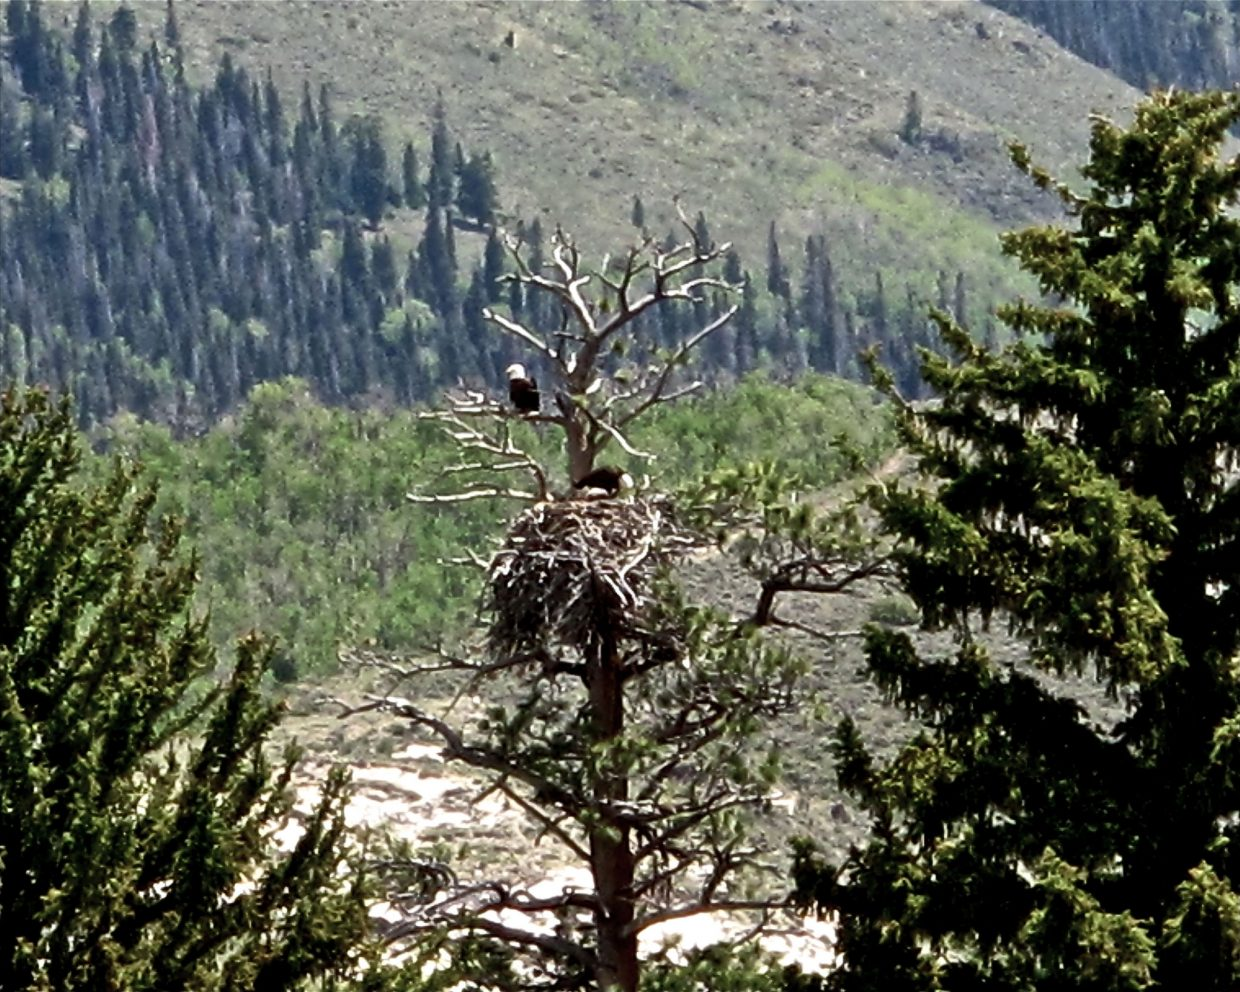 Two eagles and a nest. Taken near Finger Rock, south of Yampa, east of Colorado Highway 131. Submitted by: Doug Lewer